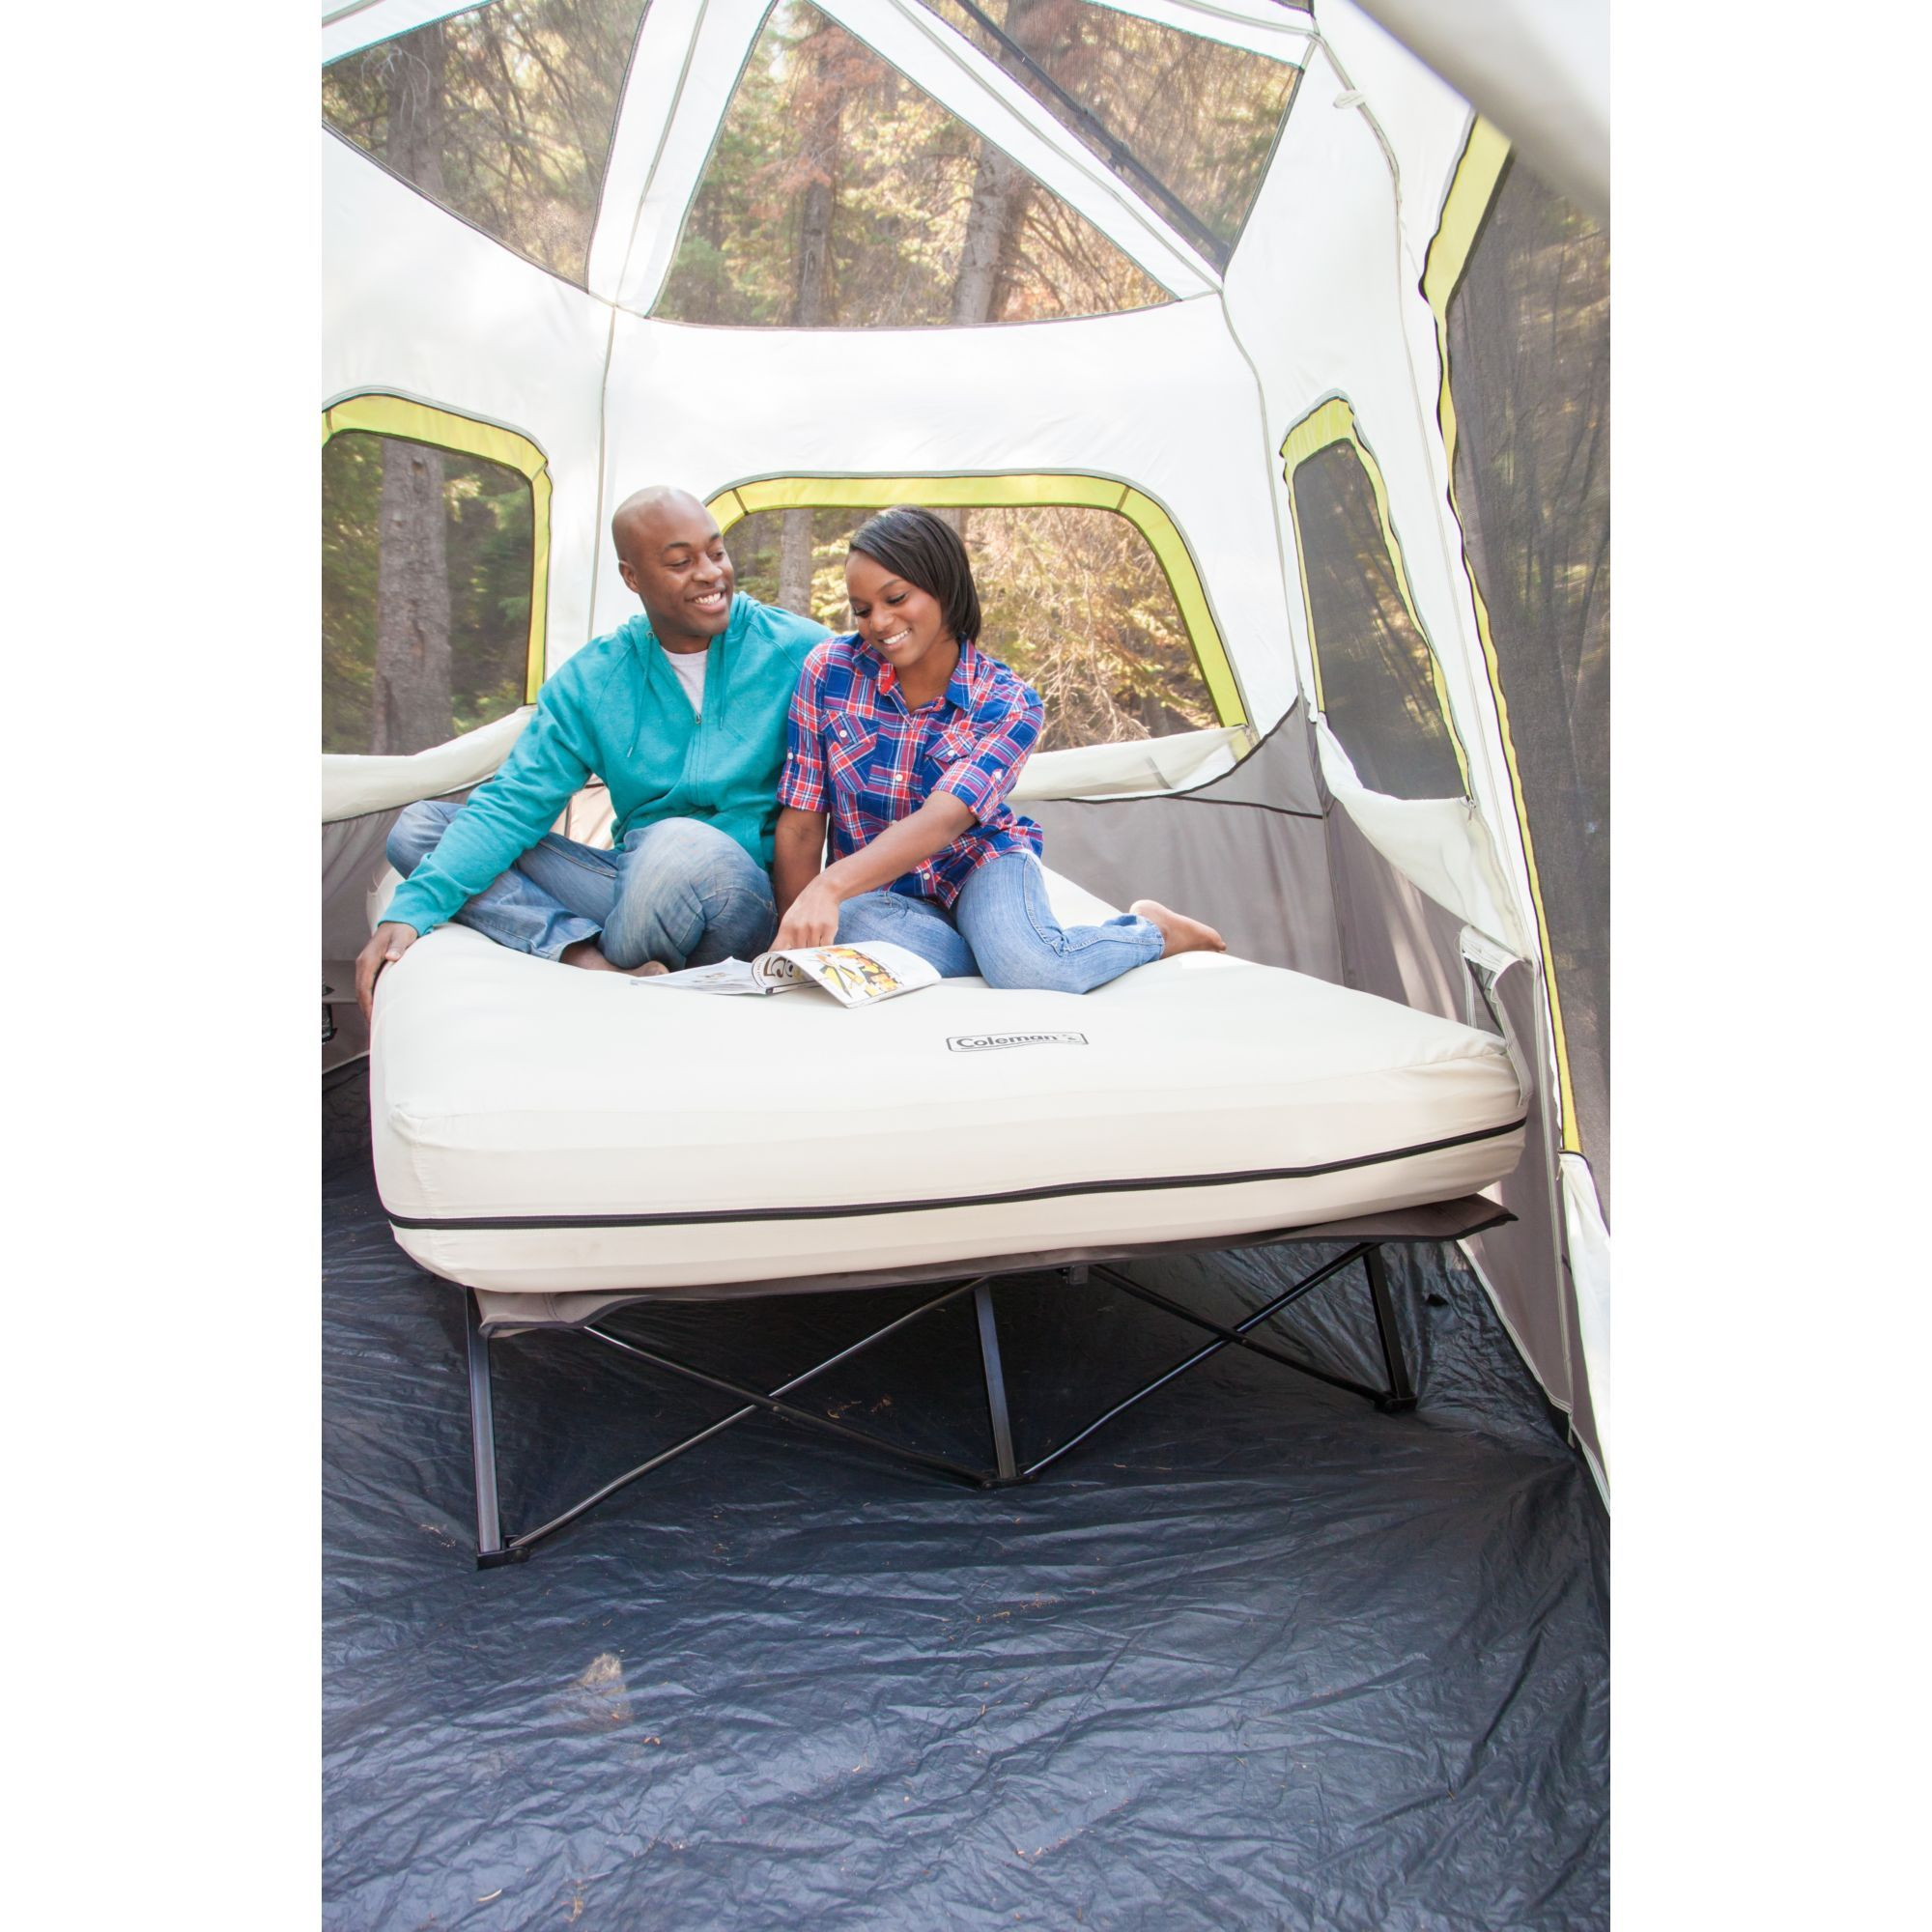 Airbed Cot Queen Camping cot, Tent cot, Bed